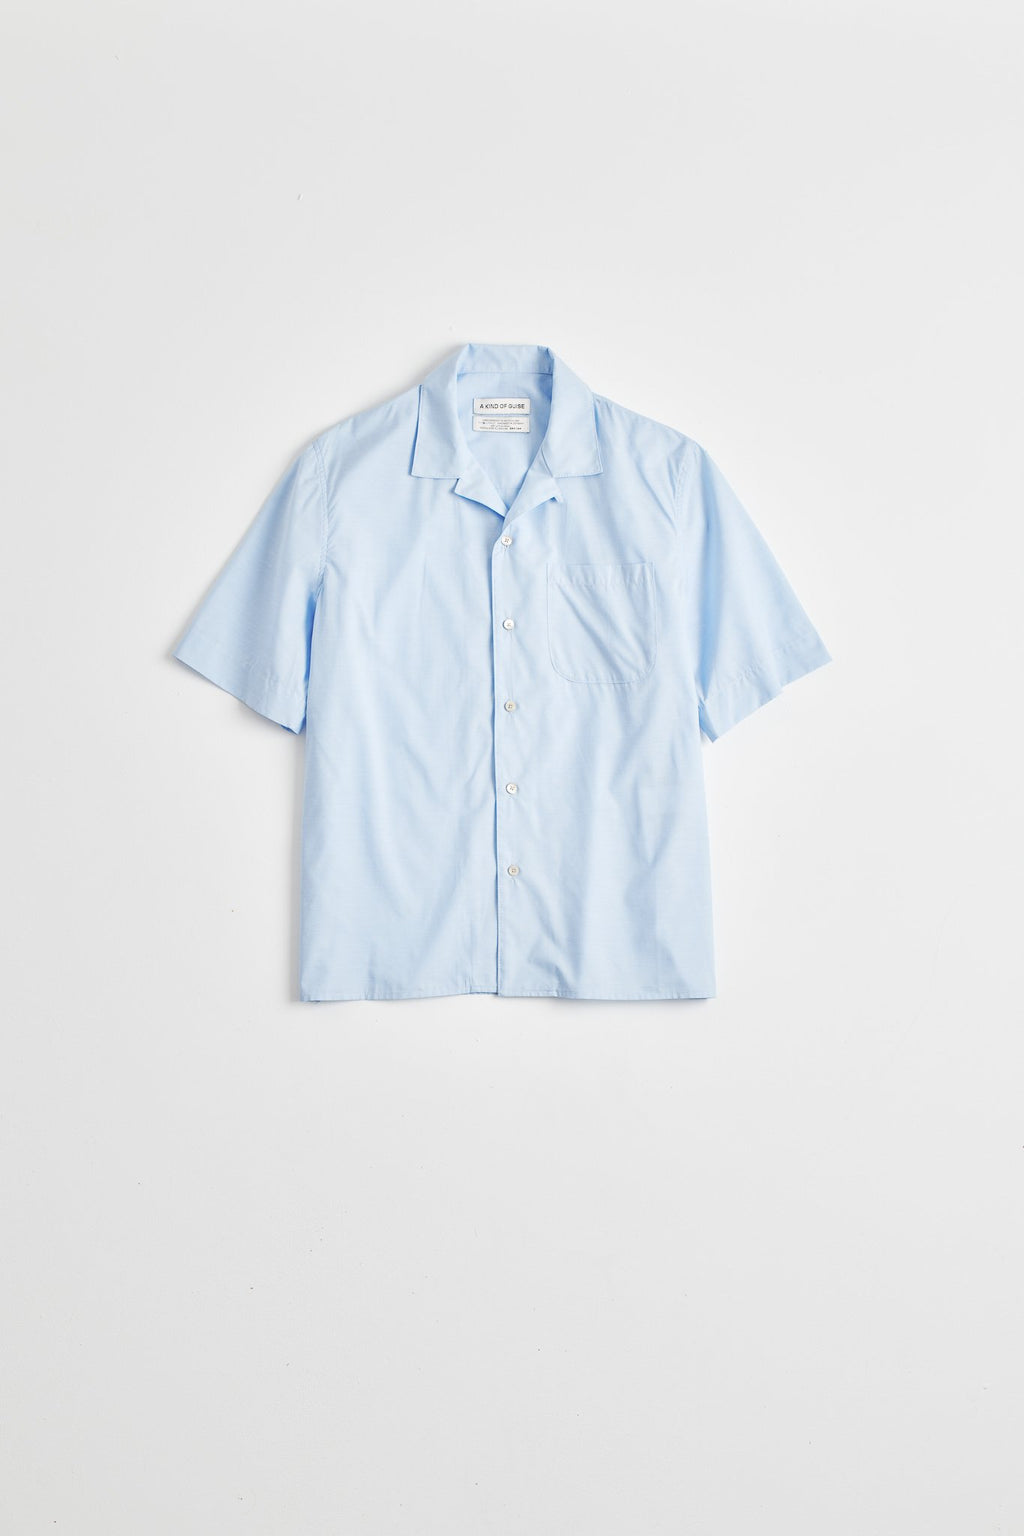 A Kind Of Guise Gioia Shirt, Light Blue